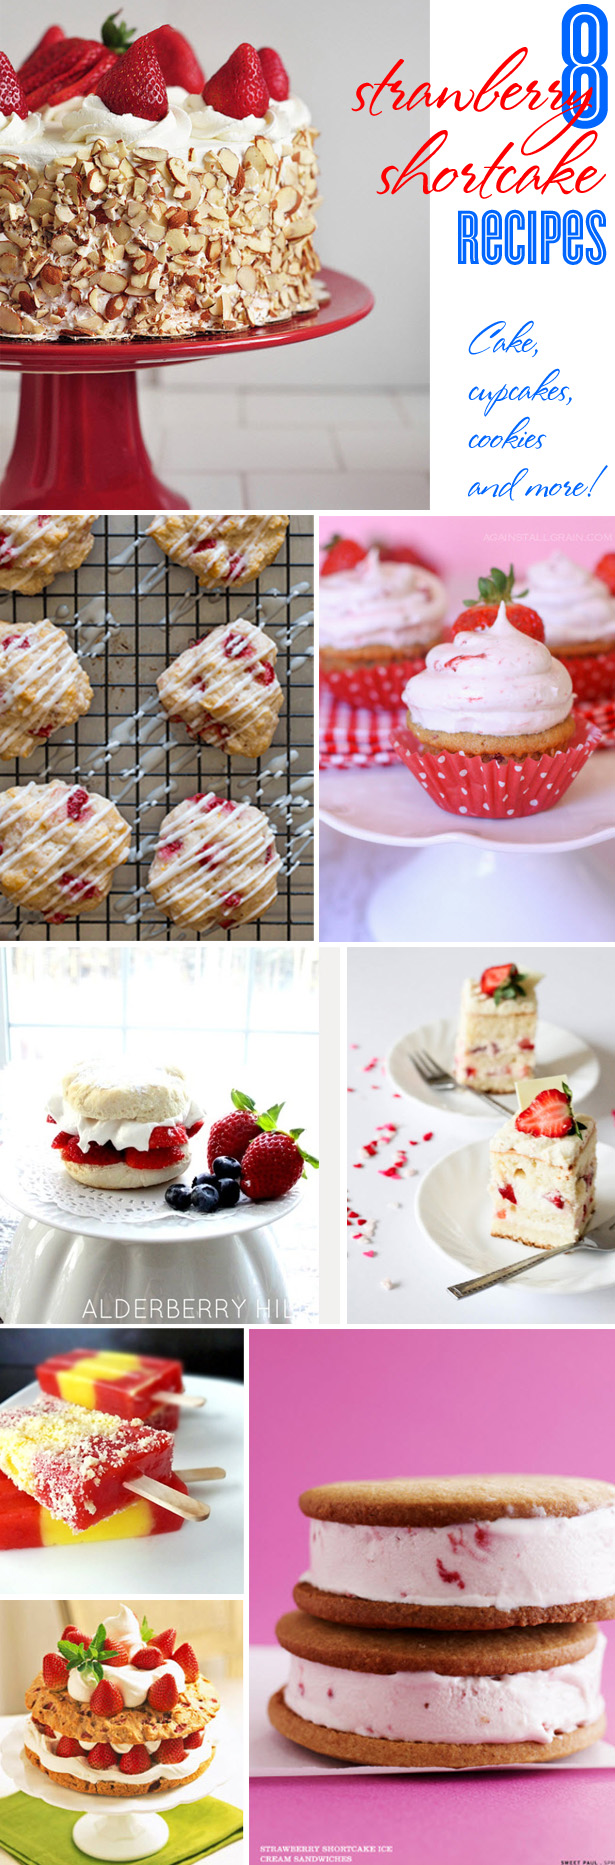 Strawberry Cakes and Cupcakes